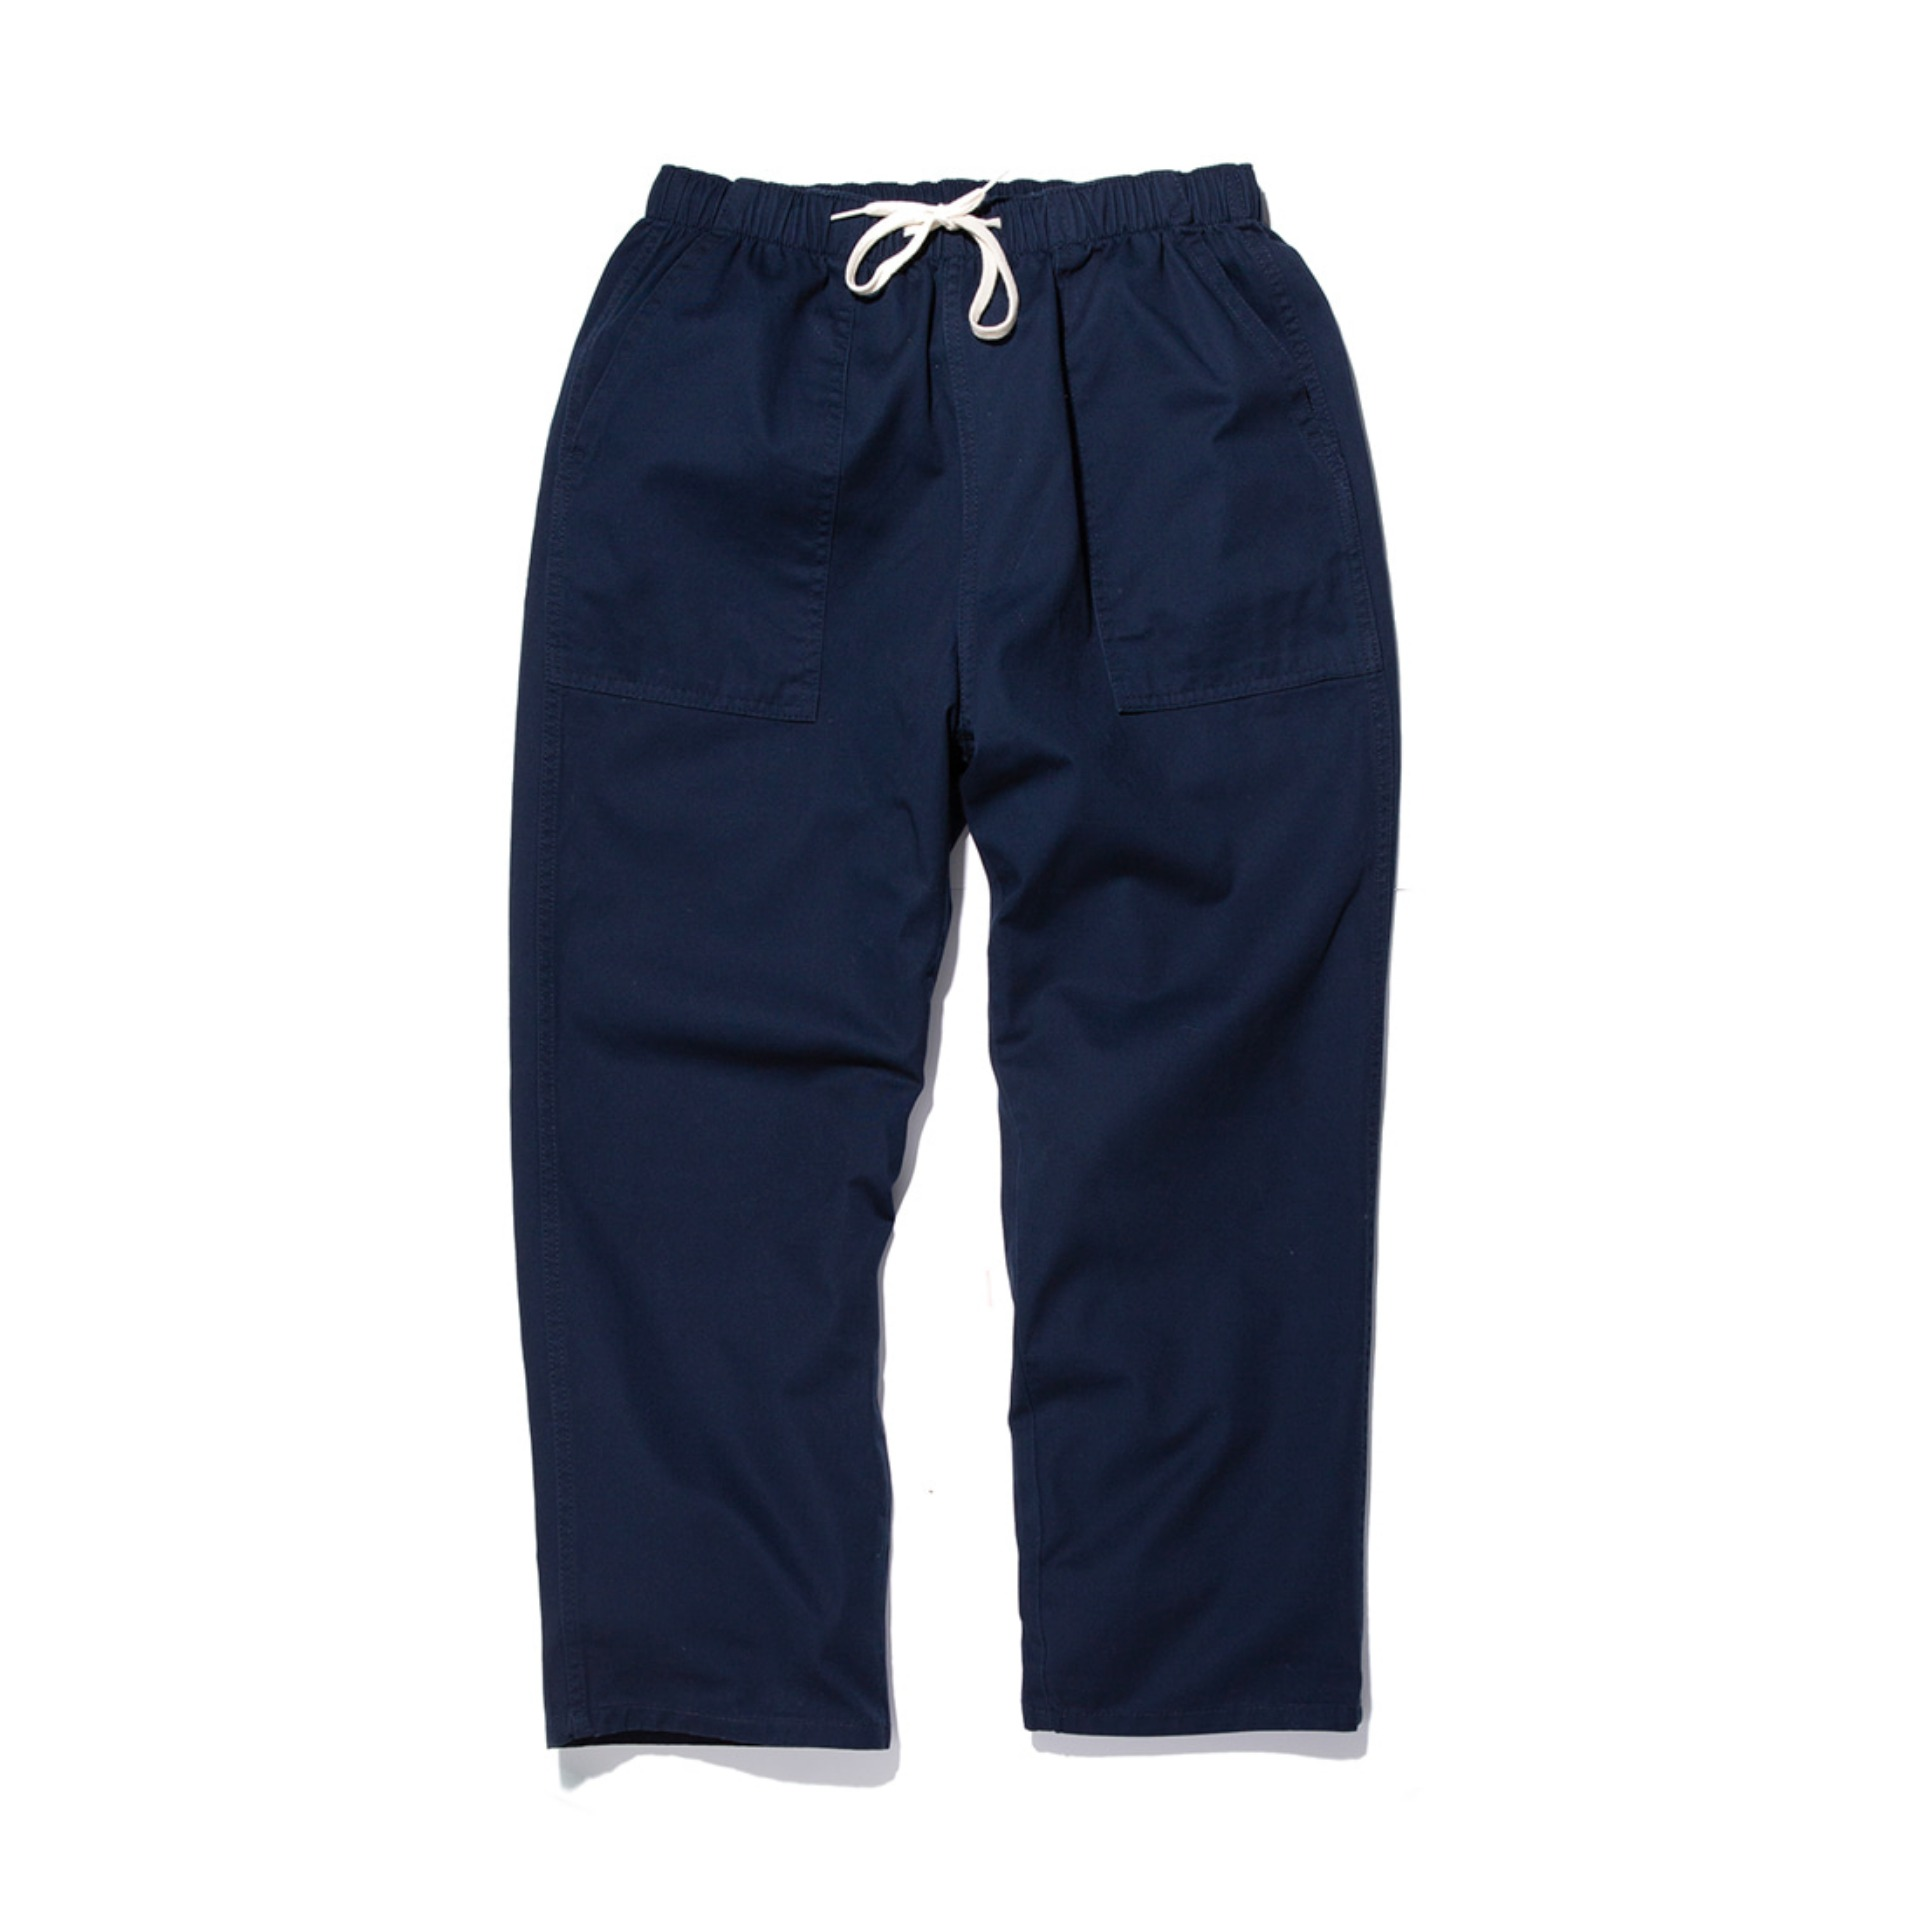 Ocean Fatigue Pants(NAVY)